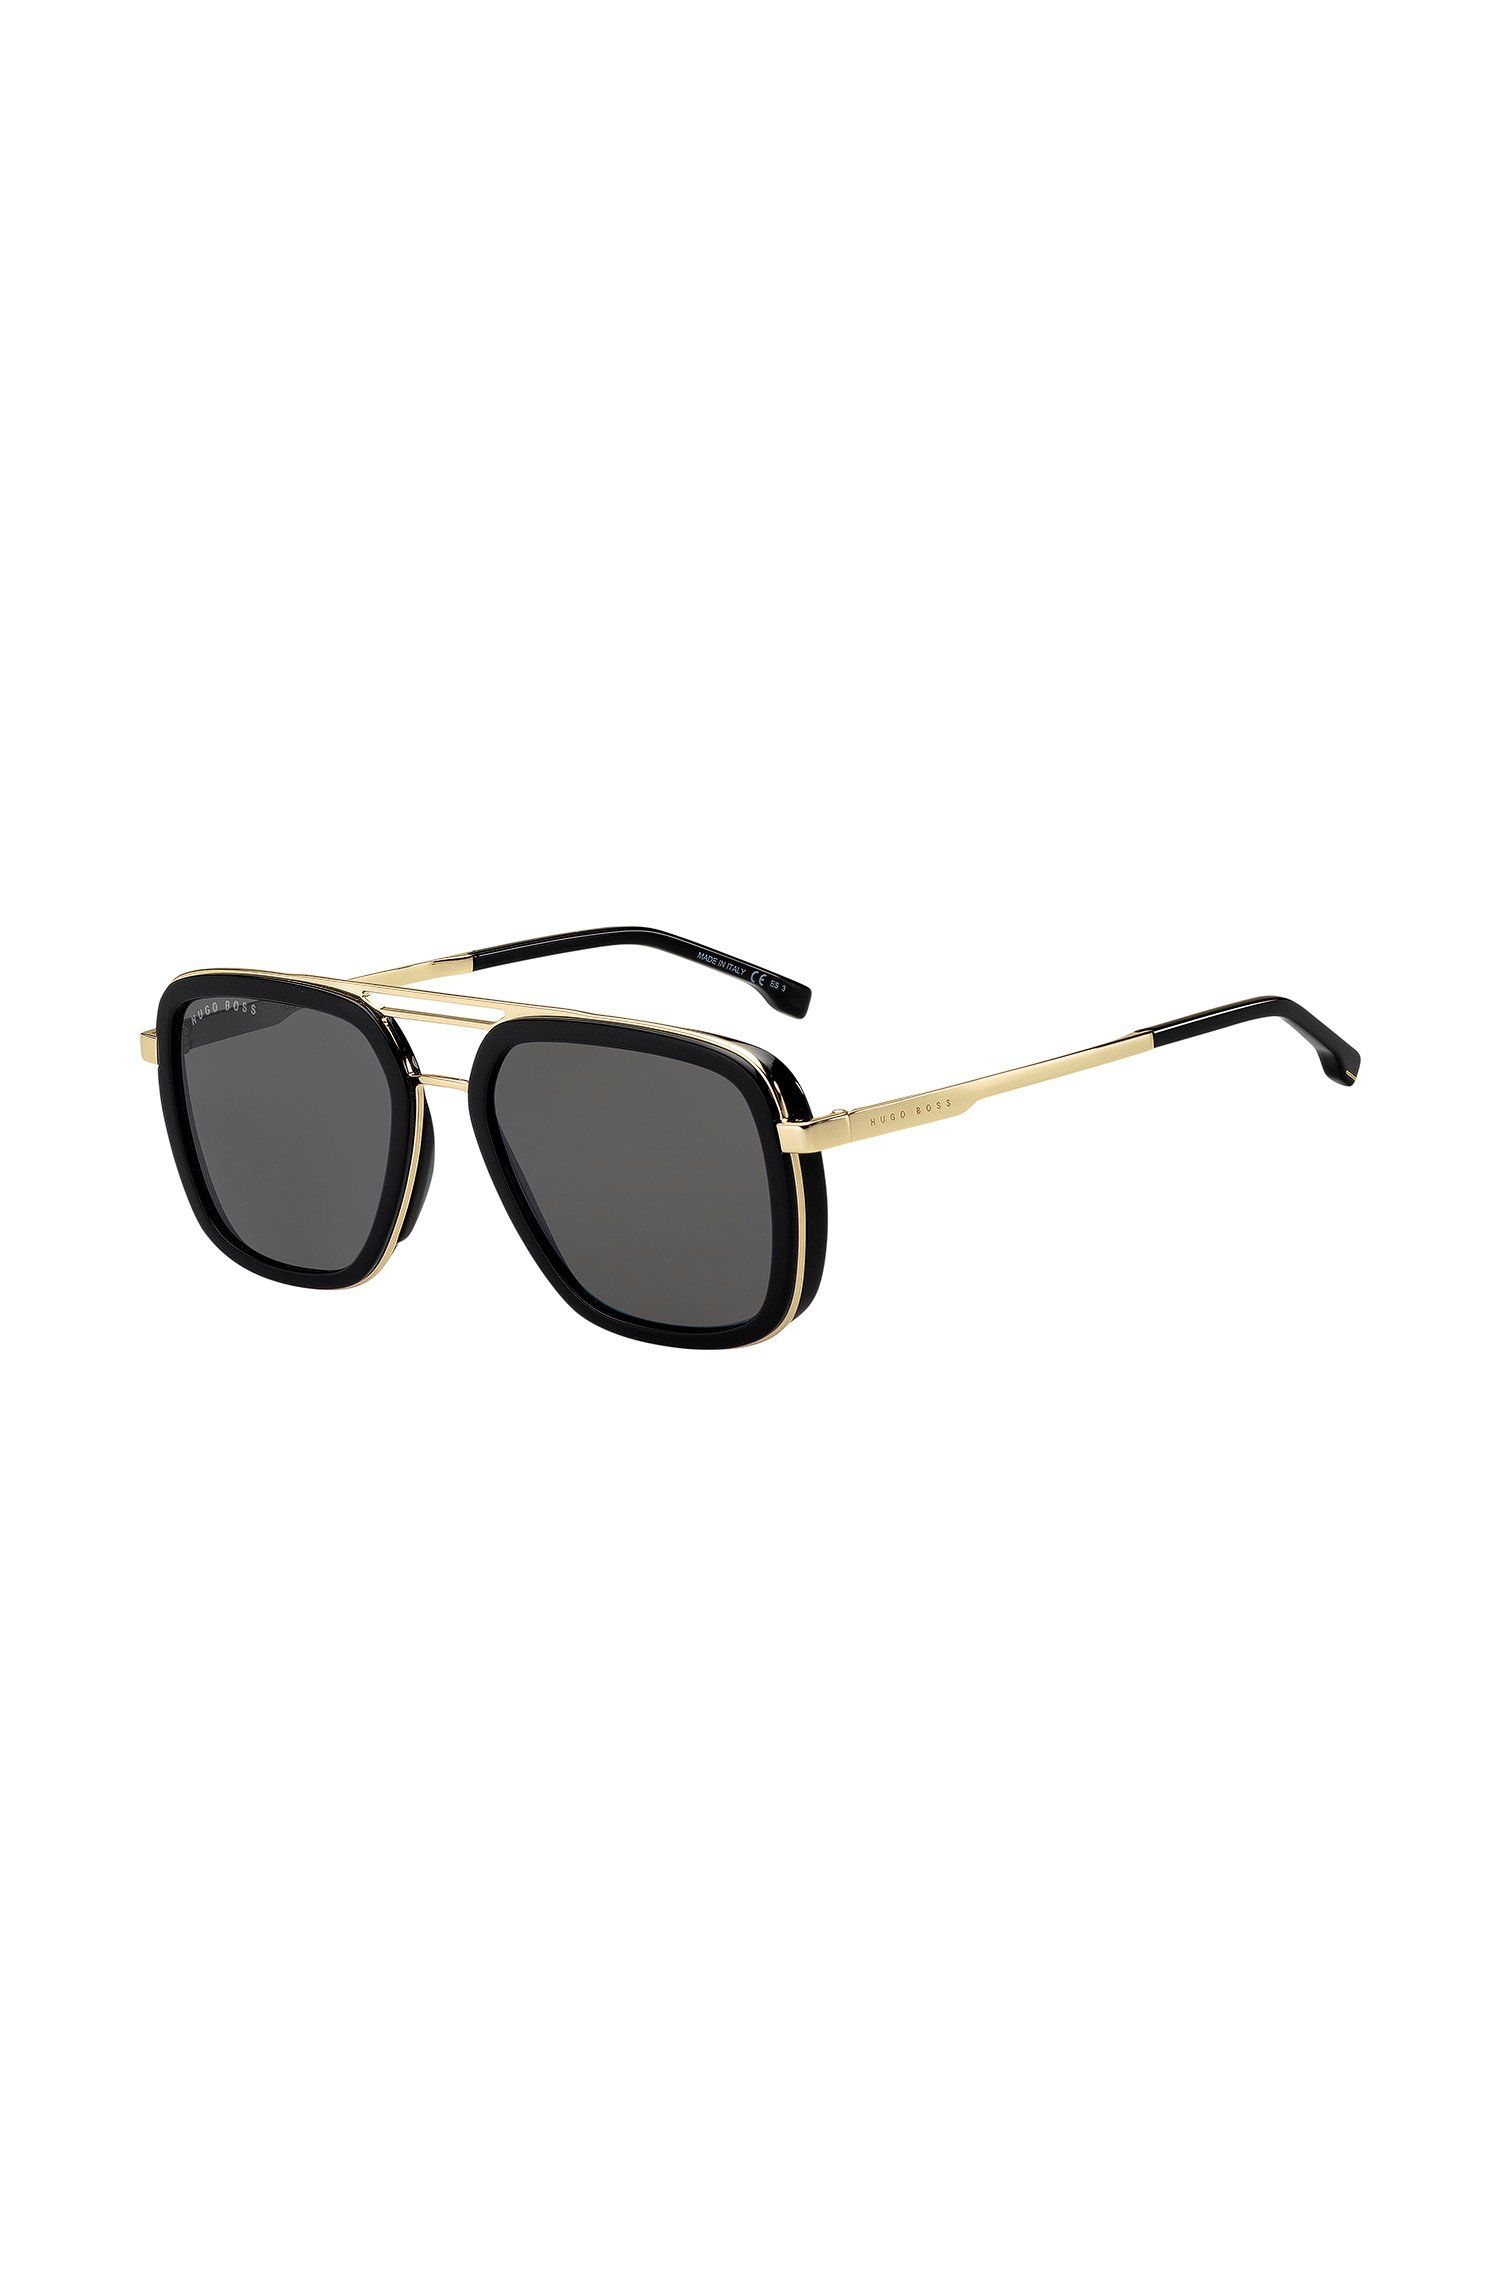 Triple-bridge sunglasses with black and gold finishes, Assorted-Pre-Pack